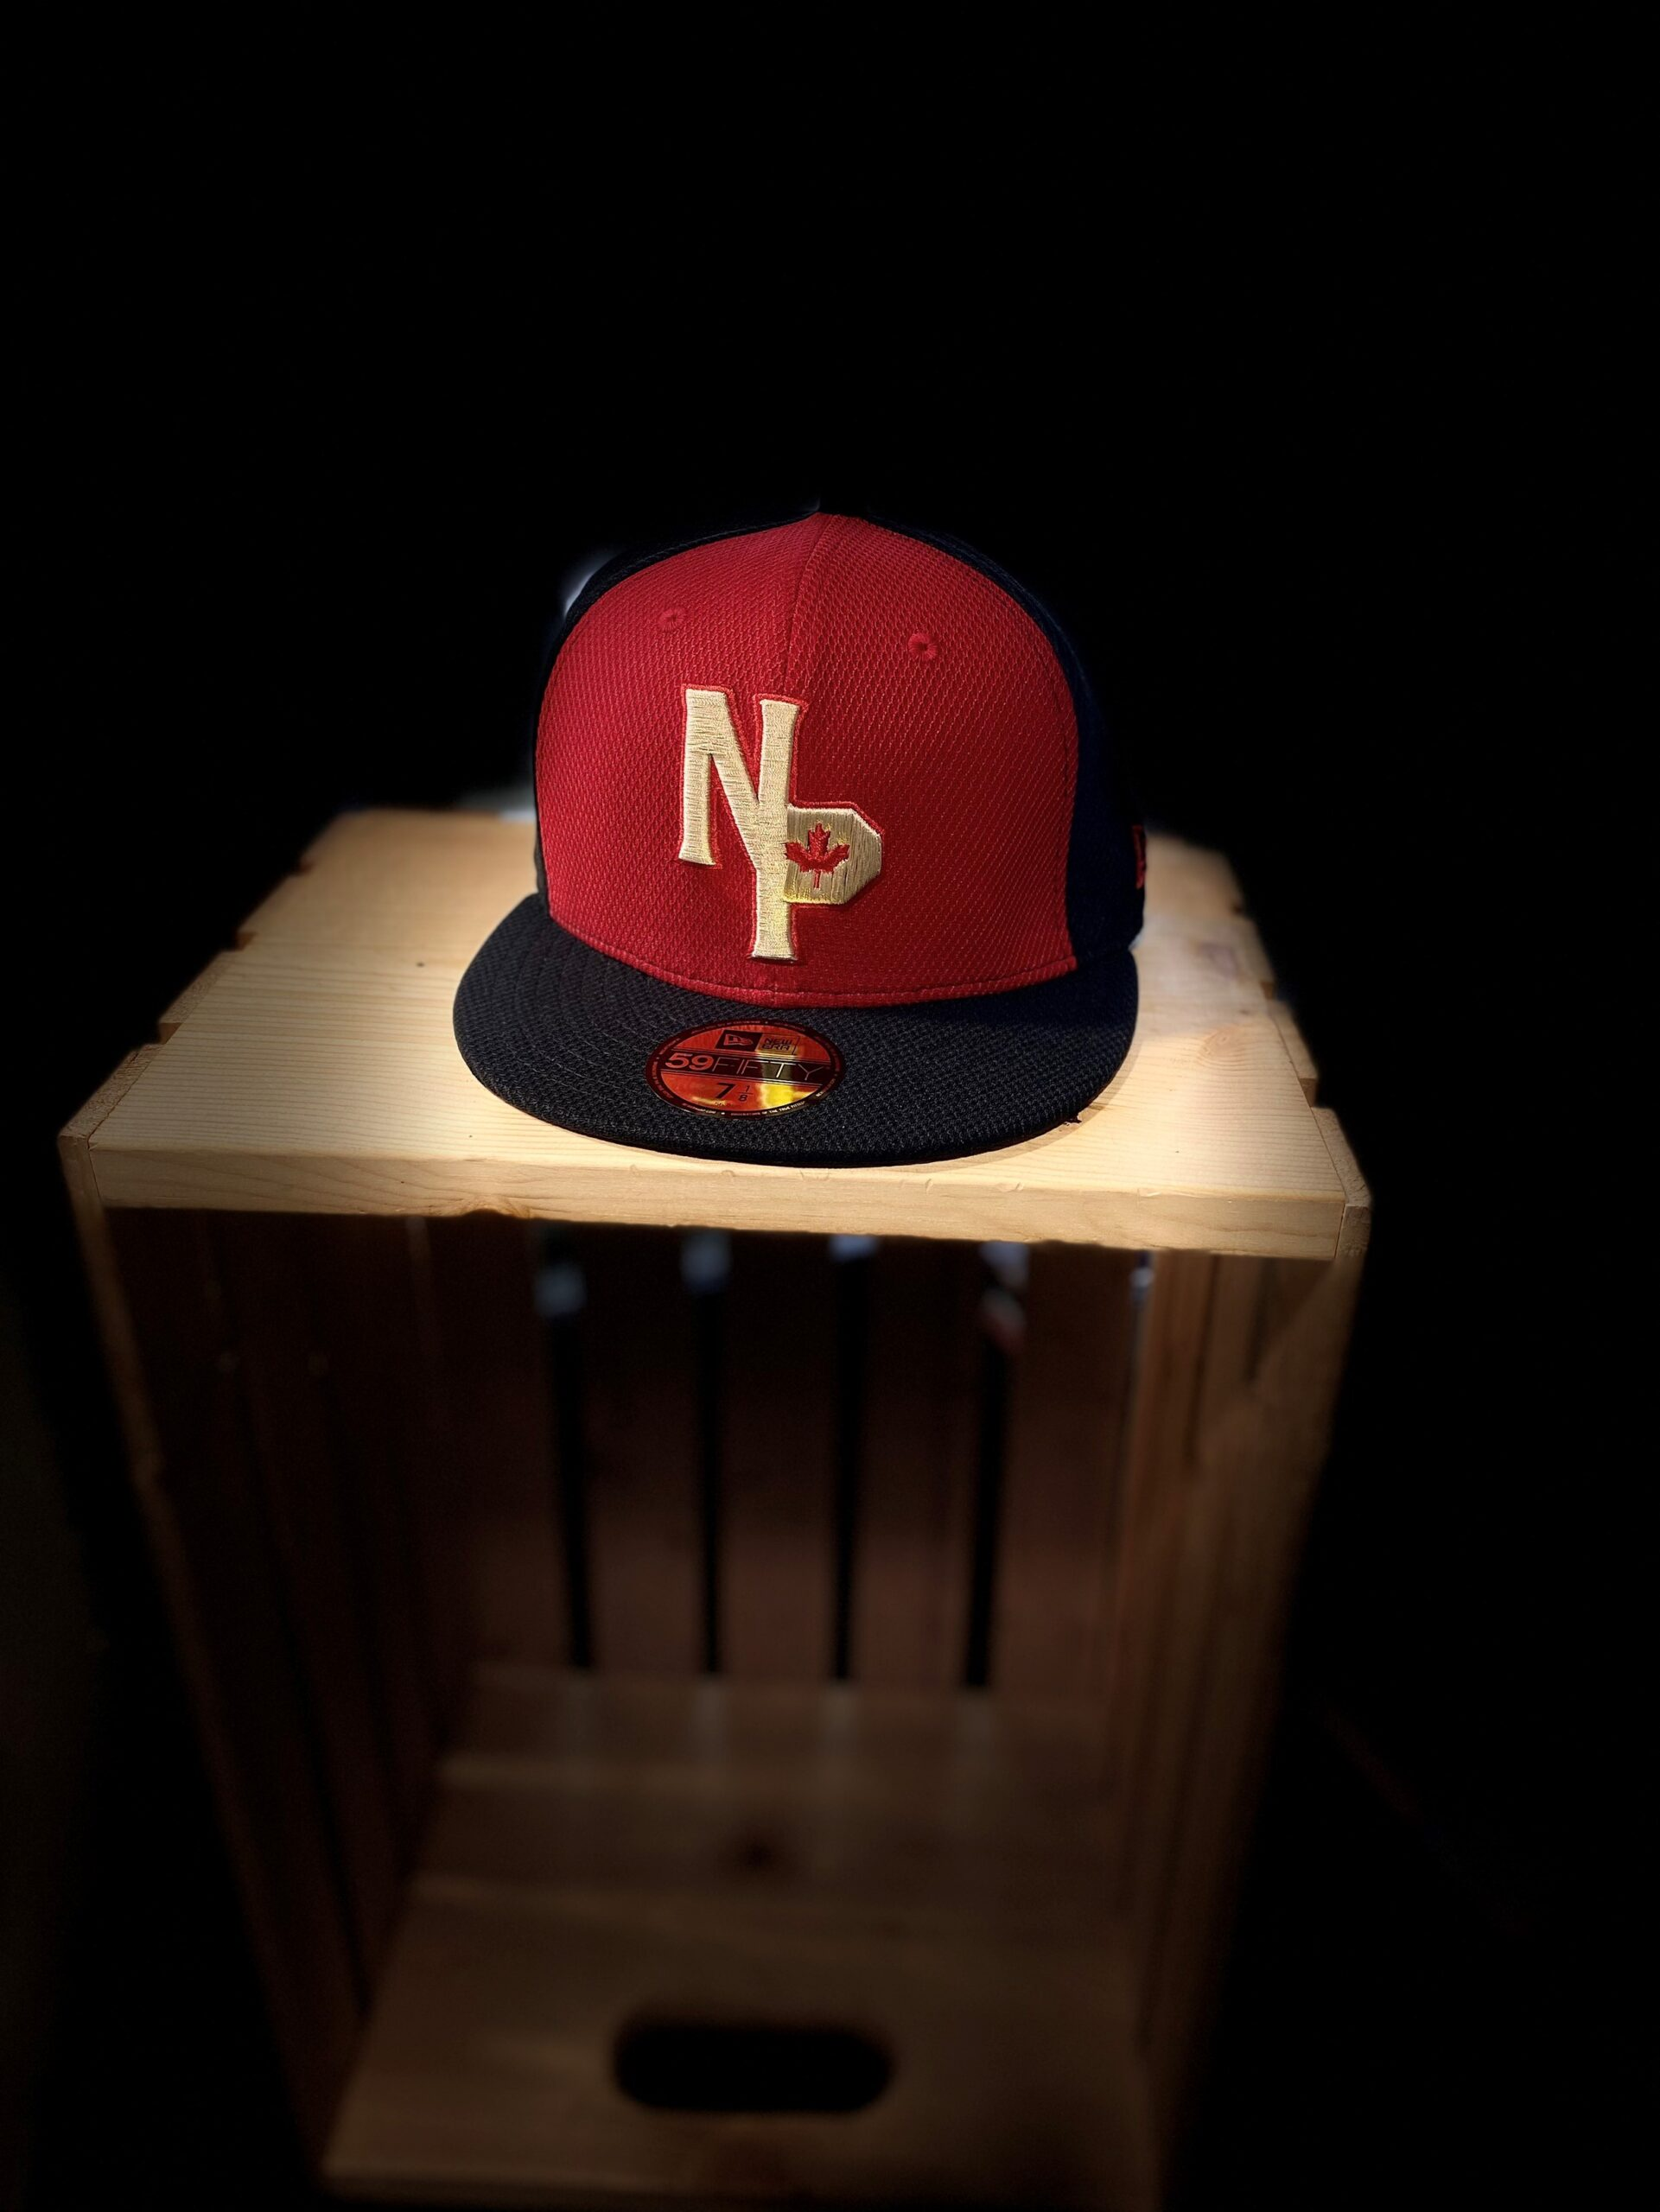 NorthPaws New Era 59FIFTY Diamond Era Fitted Hat